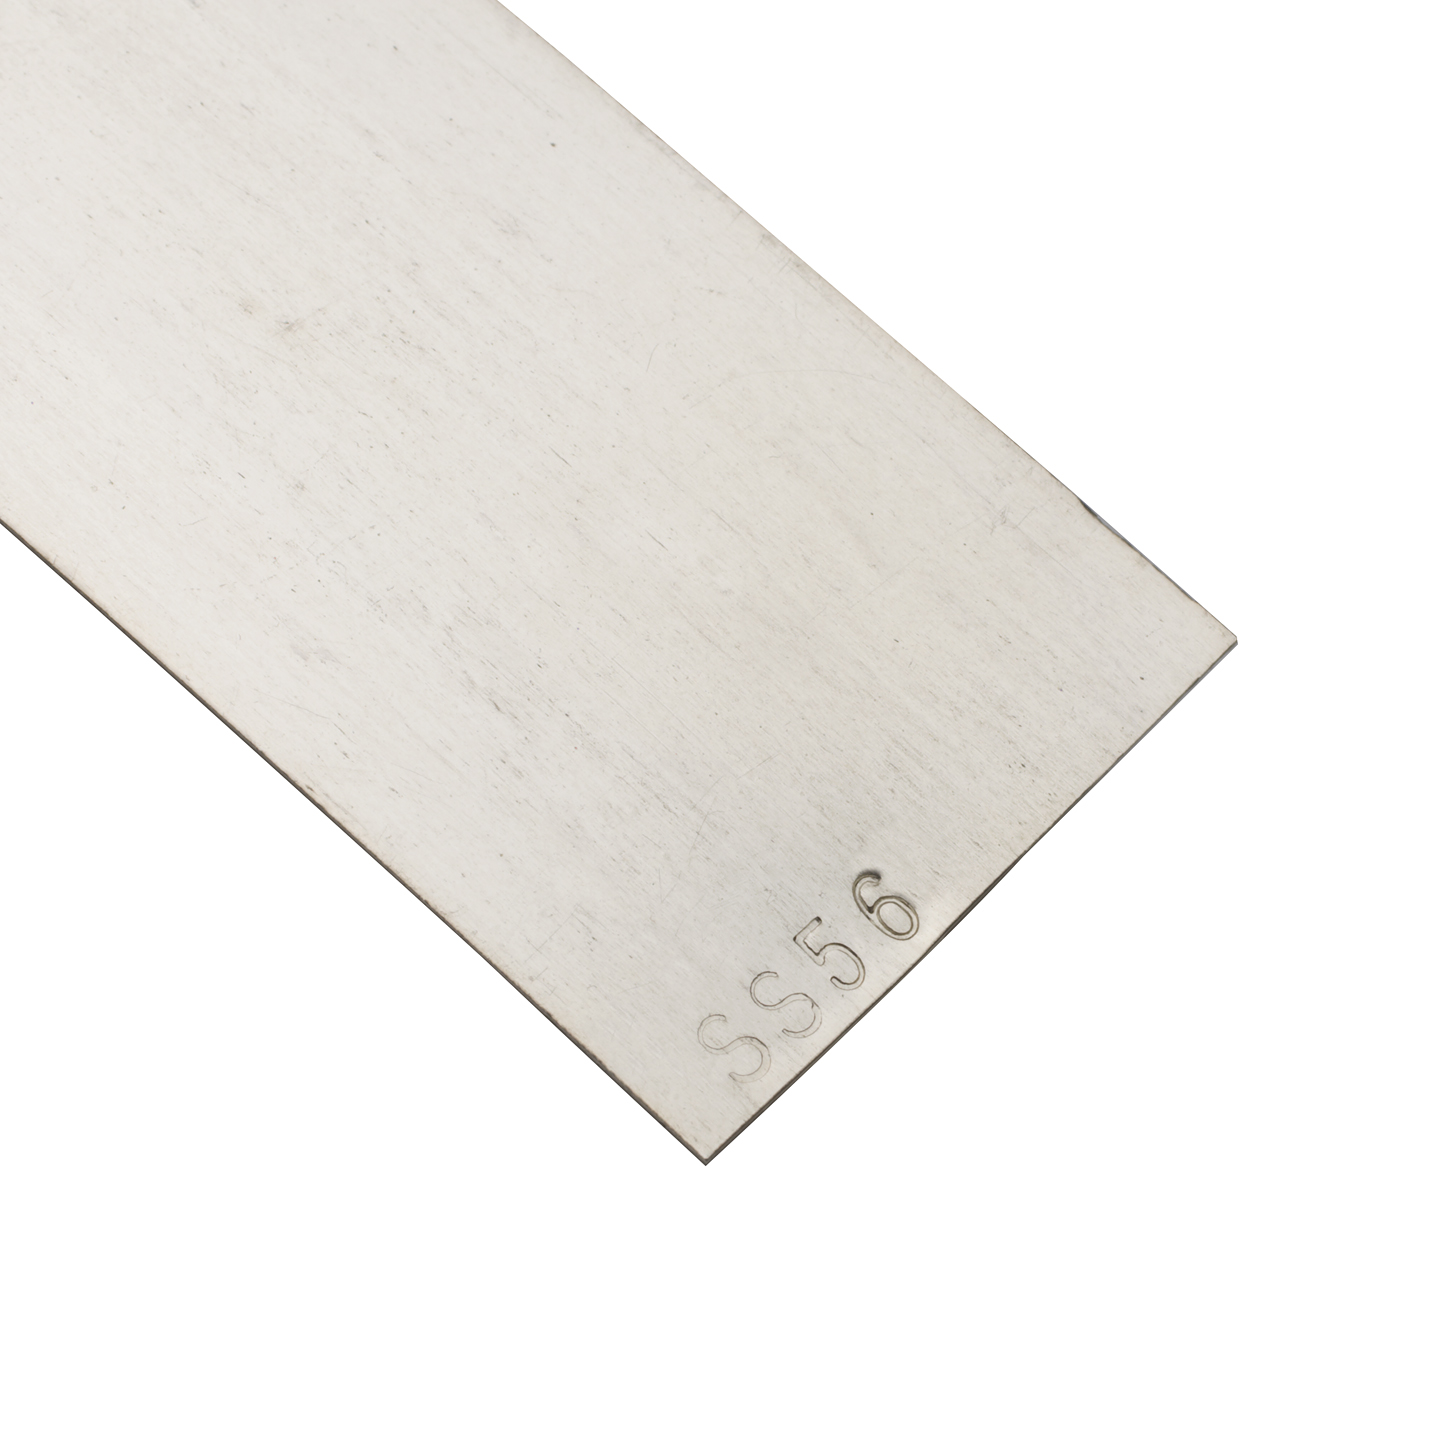 SILVER SOLDER SHEET-EXTRA SOFT - 1